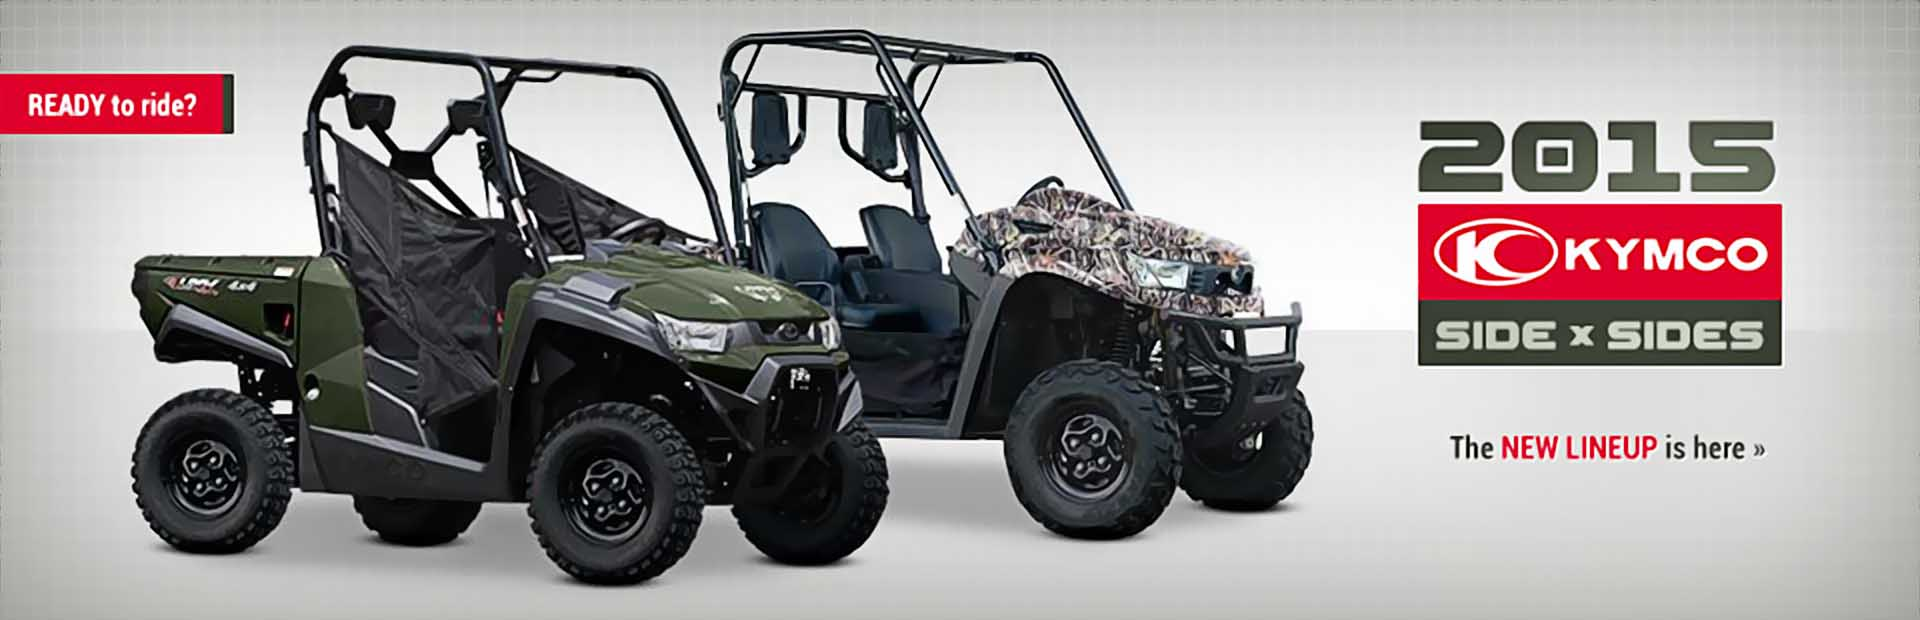 2015 KYMCO Side x Sides: Click here to view the lineup.